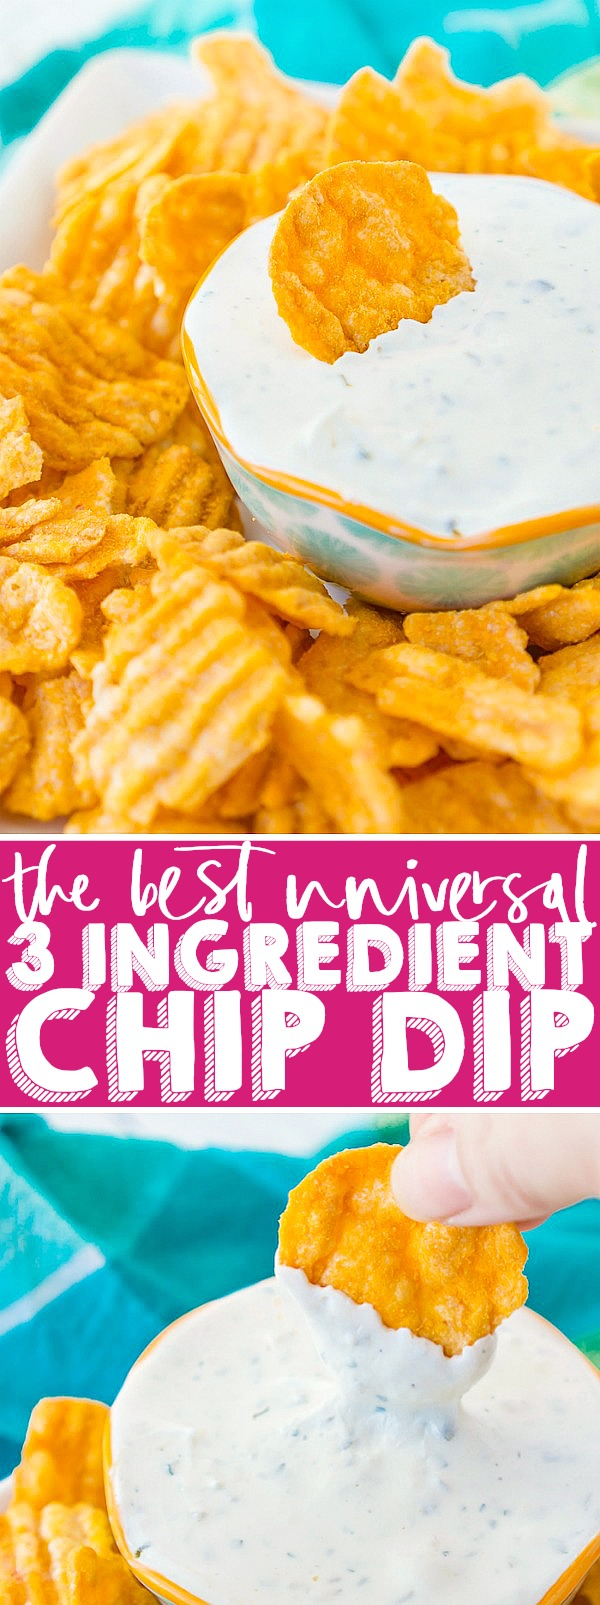 This is the Best Chip Dip Recipe for the big Game Day because it's so versatile! Only 3 ingredients and you have a light, herbed chip dip that pairs well with every chip. | THE LOVE NERDS #chipdip #appetizer #gamedayfood